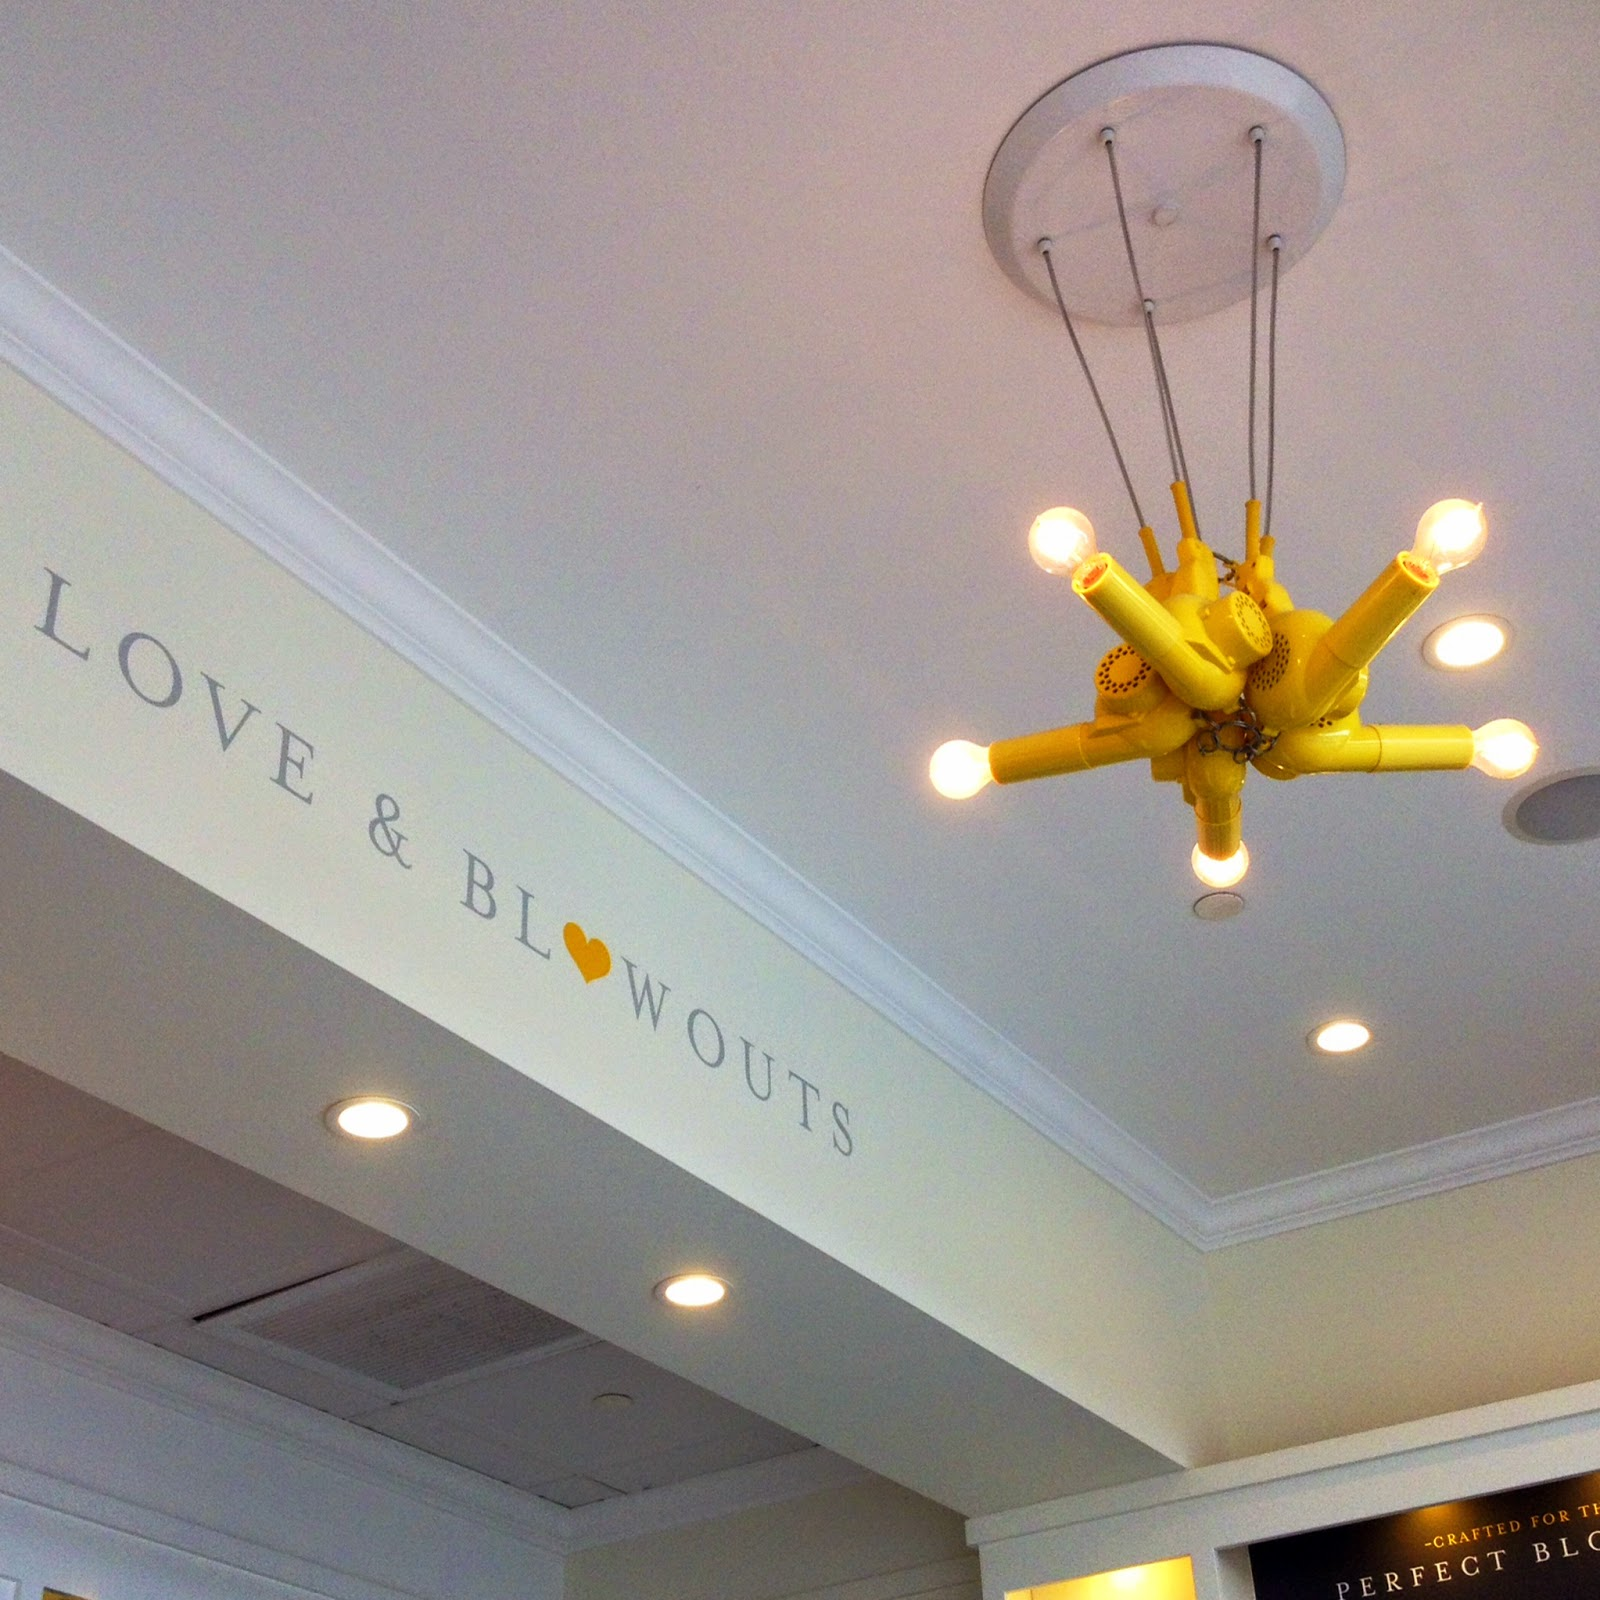 Blow dryer chandelier, drybar Blow dryer chandelier, yellow pops of color, home decor, business decor with yellow